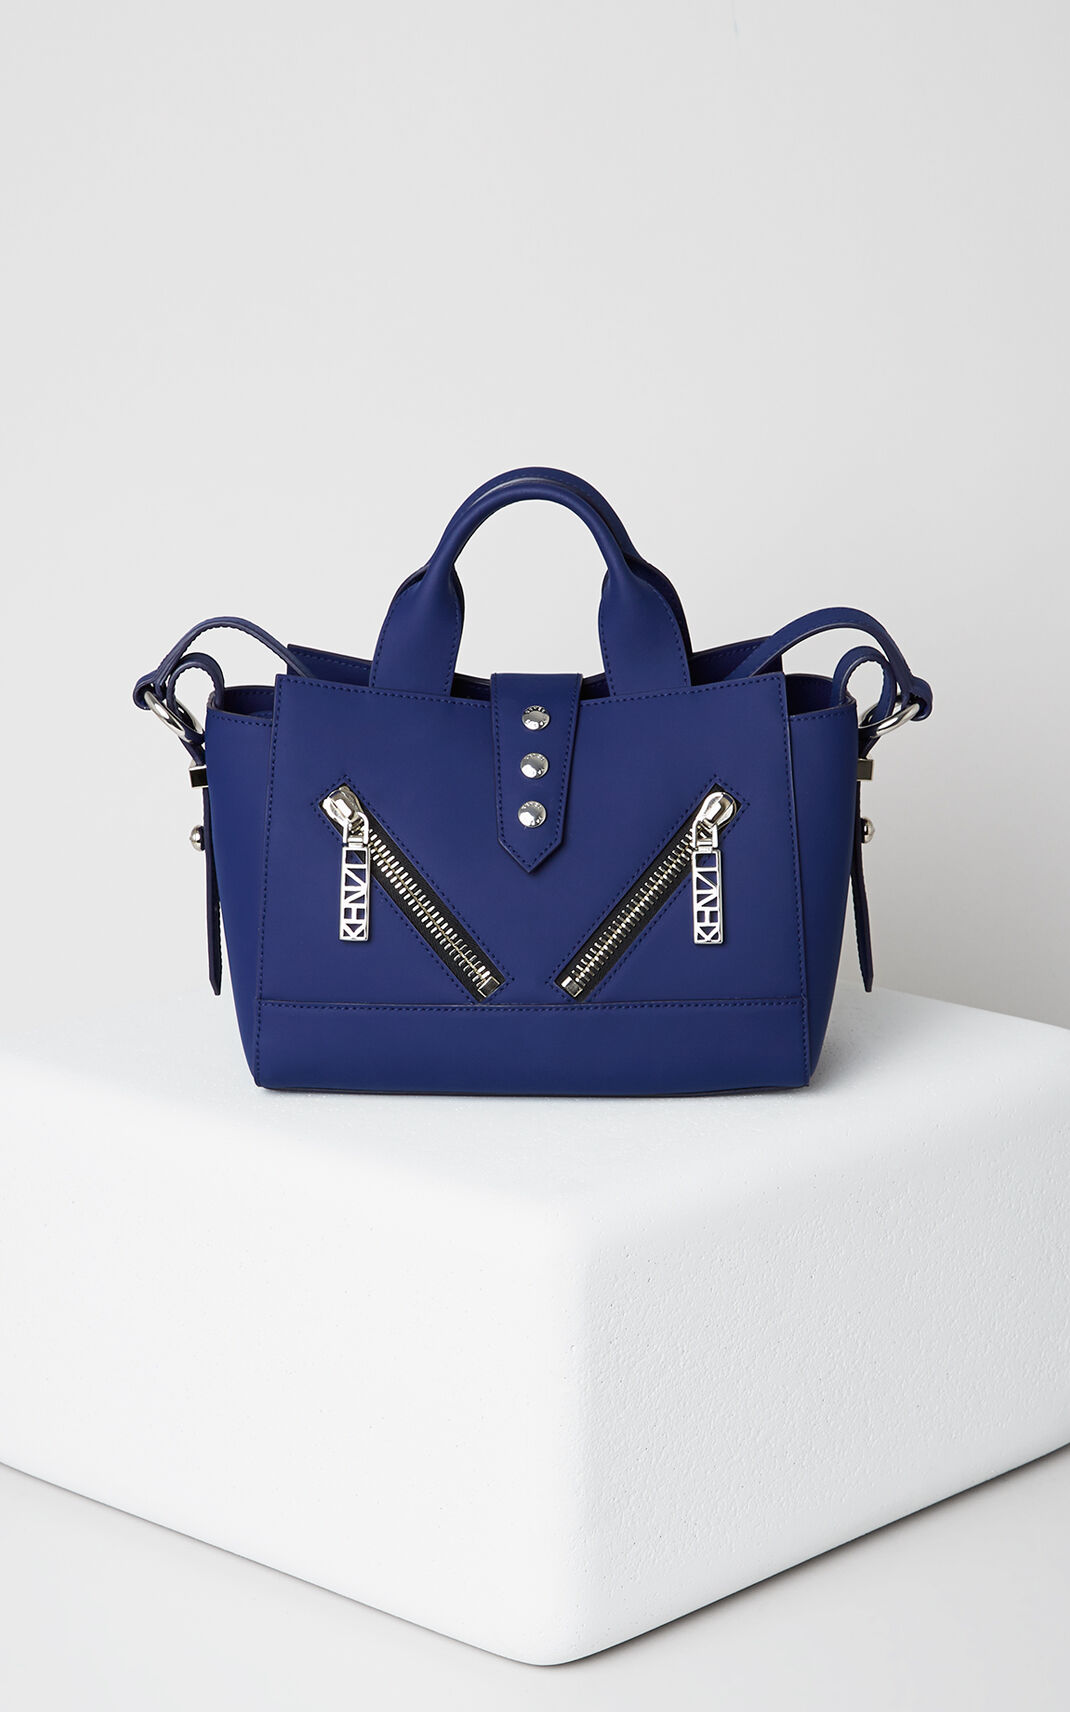 NAVY BLUE Mini Kalifornia Gommato Leather for women KENZO ...